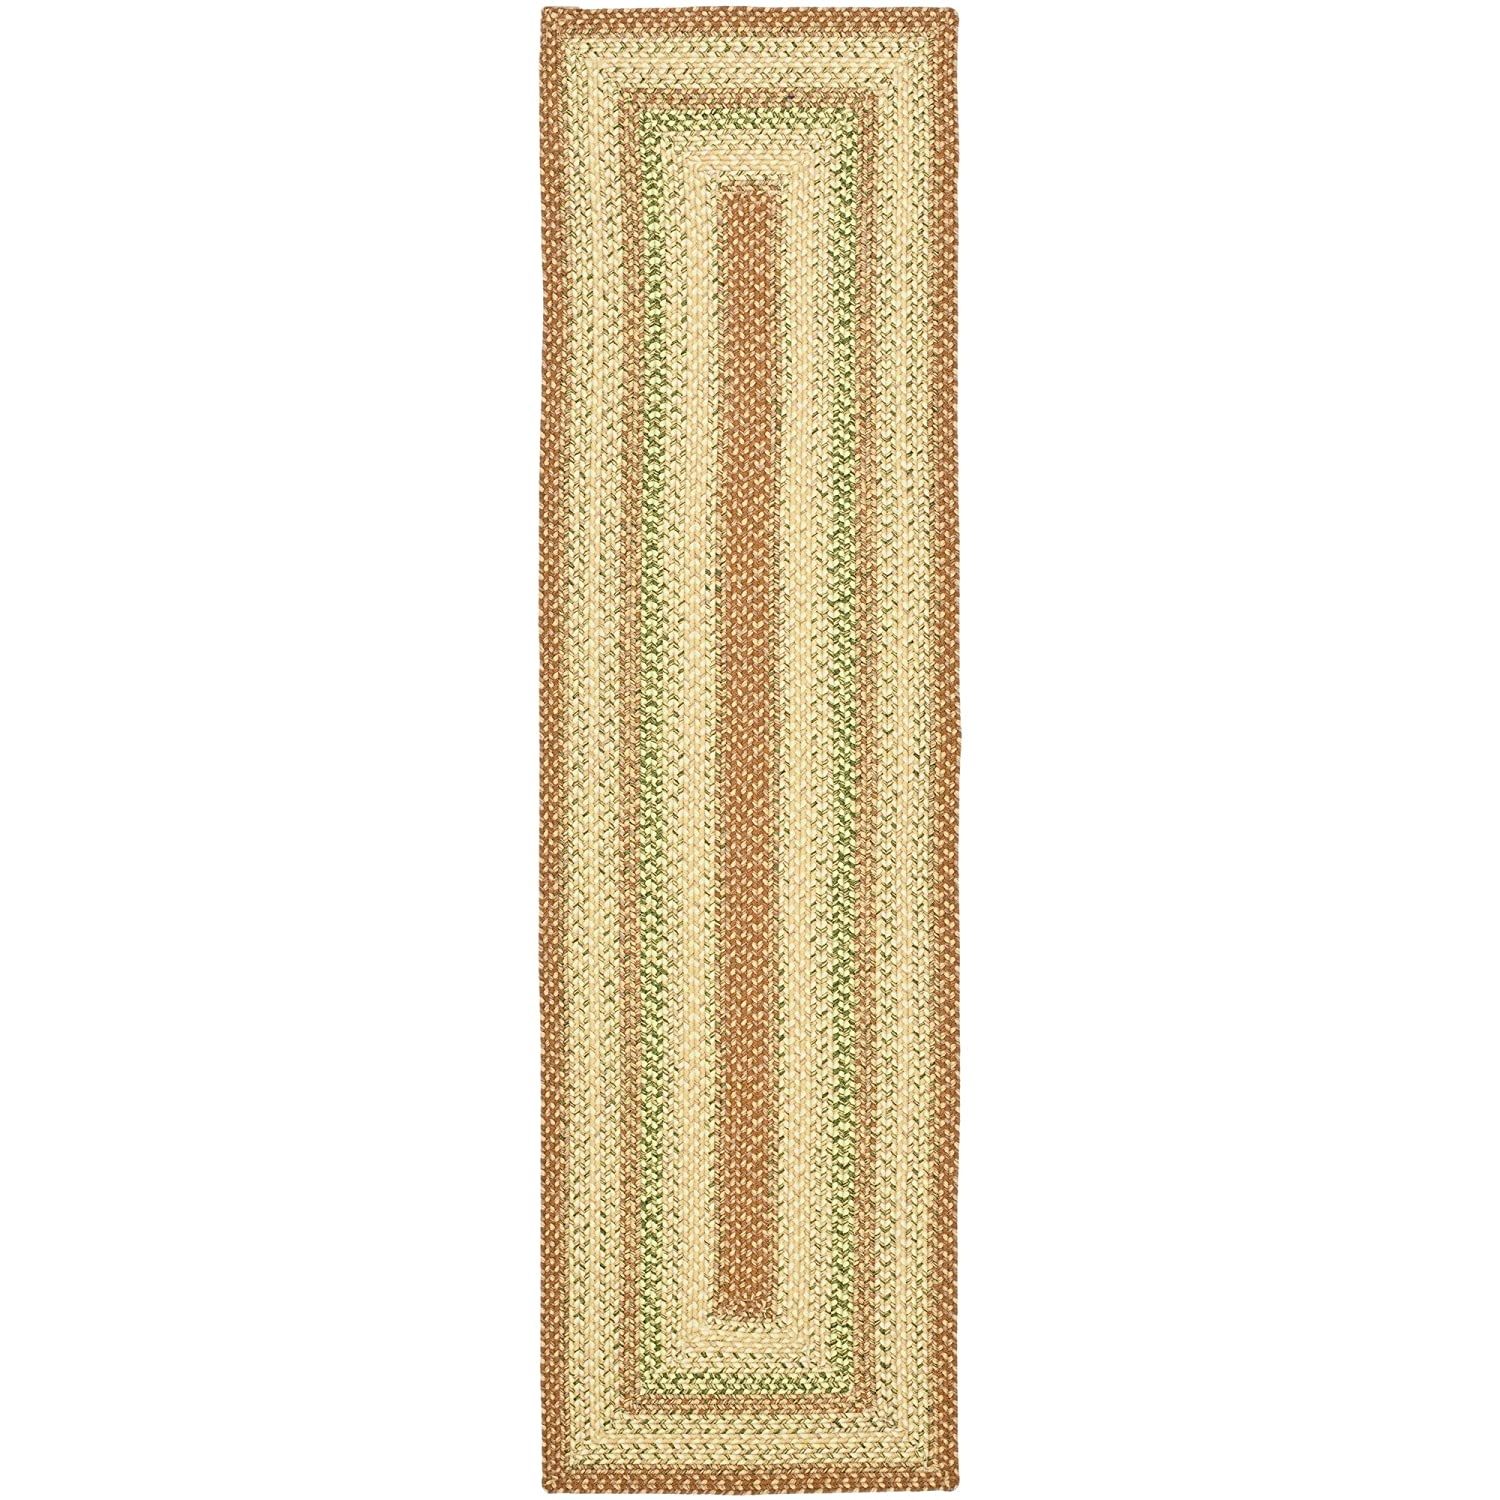 Safavieh Braided Collection BRD303A Hand Woven Rust and Multi Area Rug, 2 feet by 3 feet (2' x 3') BRD303A-2